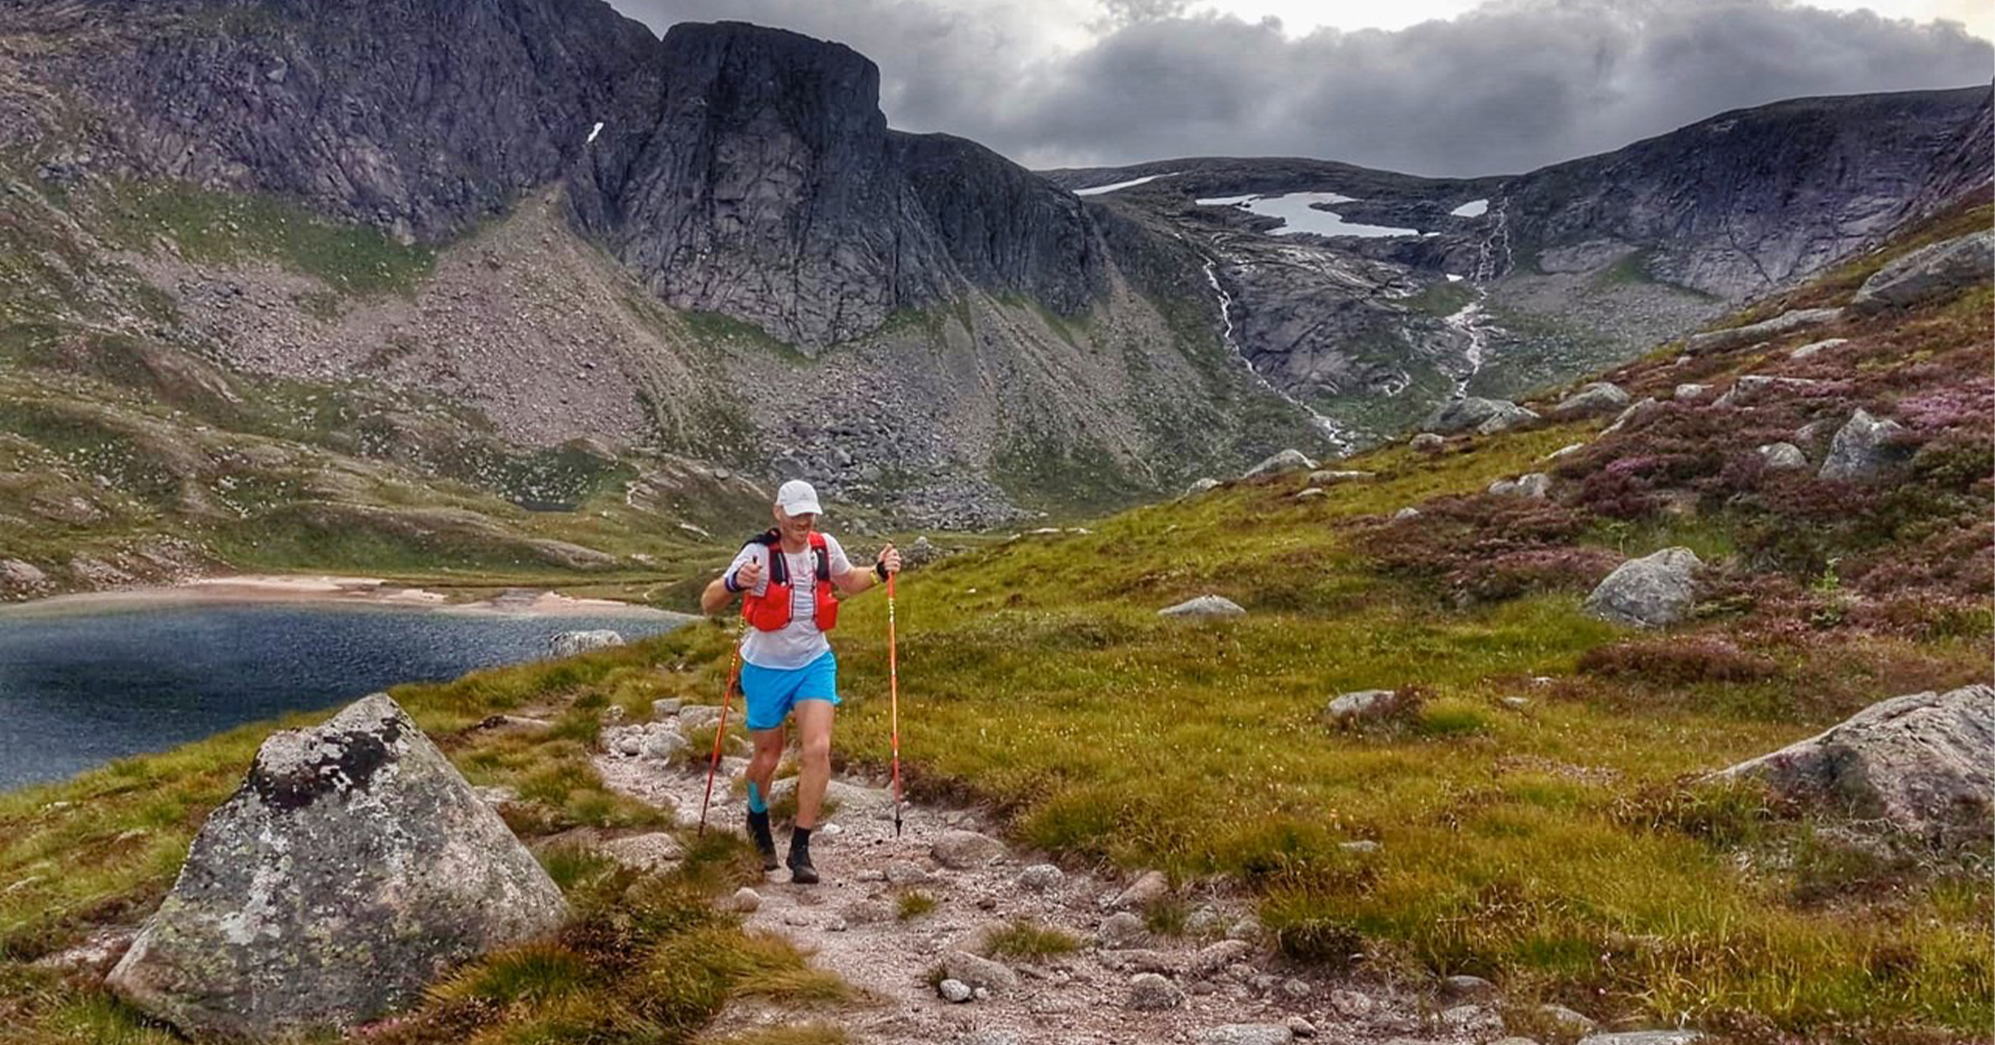 Conquering the Munros: 282 mountains, 31 days, 1 world record